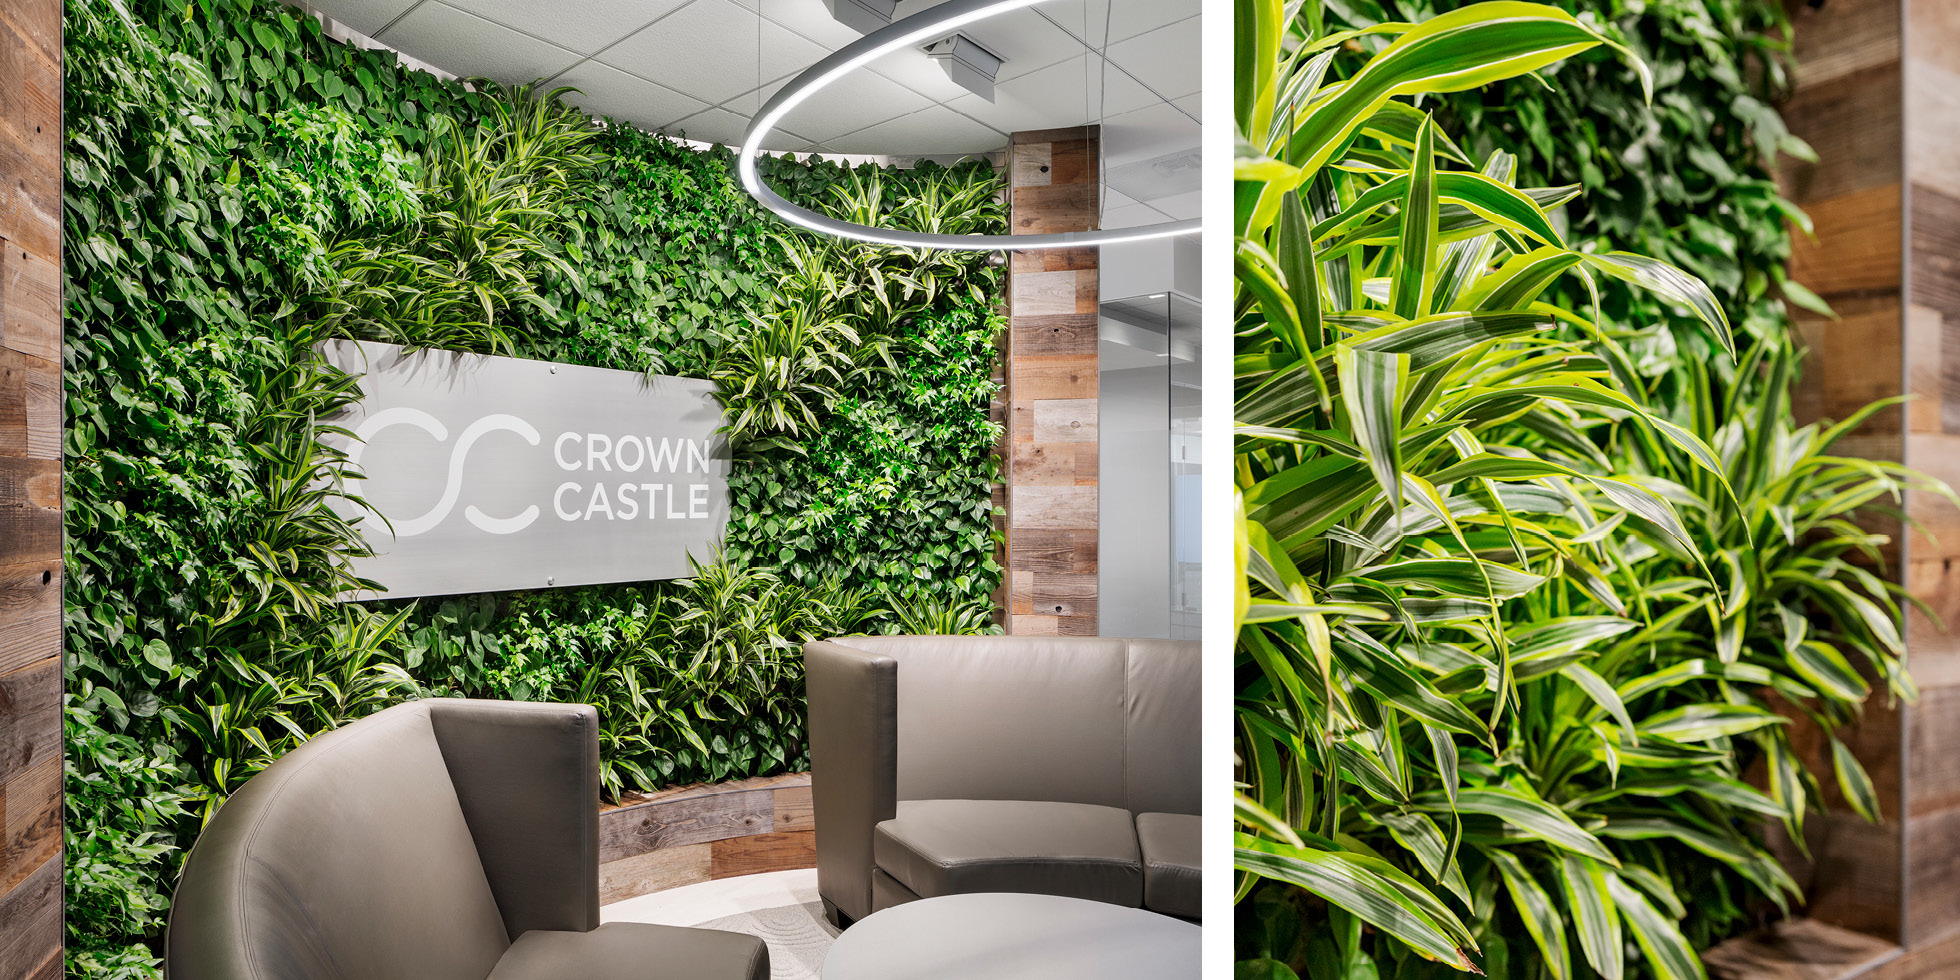 Crown Castle Living Wall by Habitat Horticulture - View 2